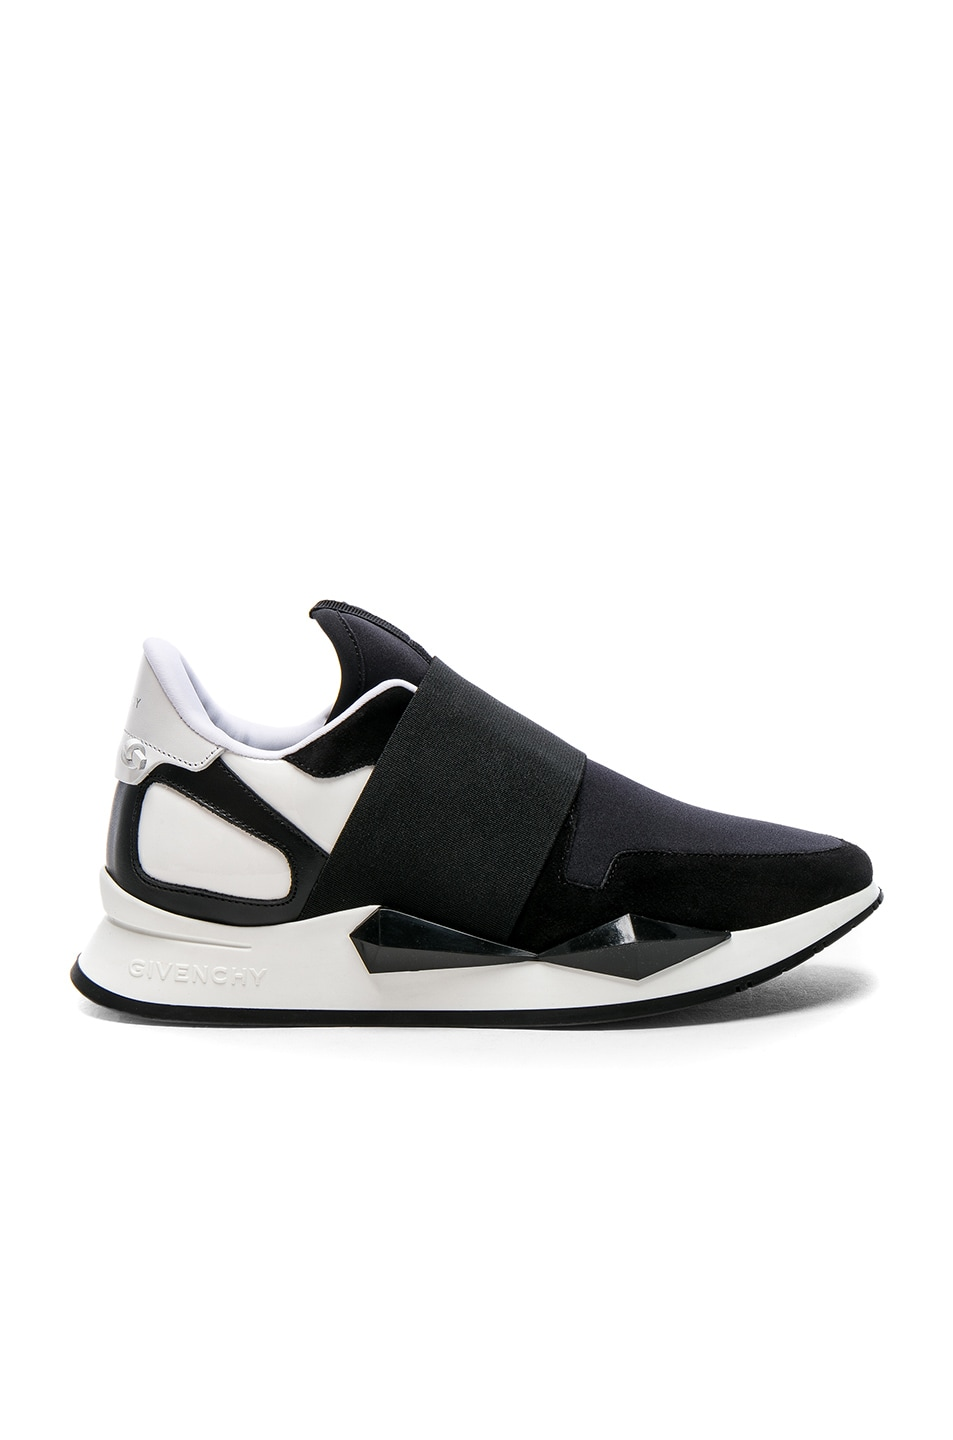 Runner Elastic Leather And Suede-Paneled Neoprene Sneakers, Black